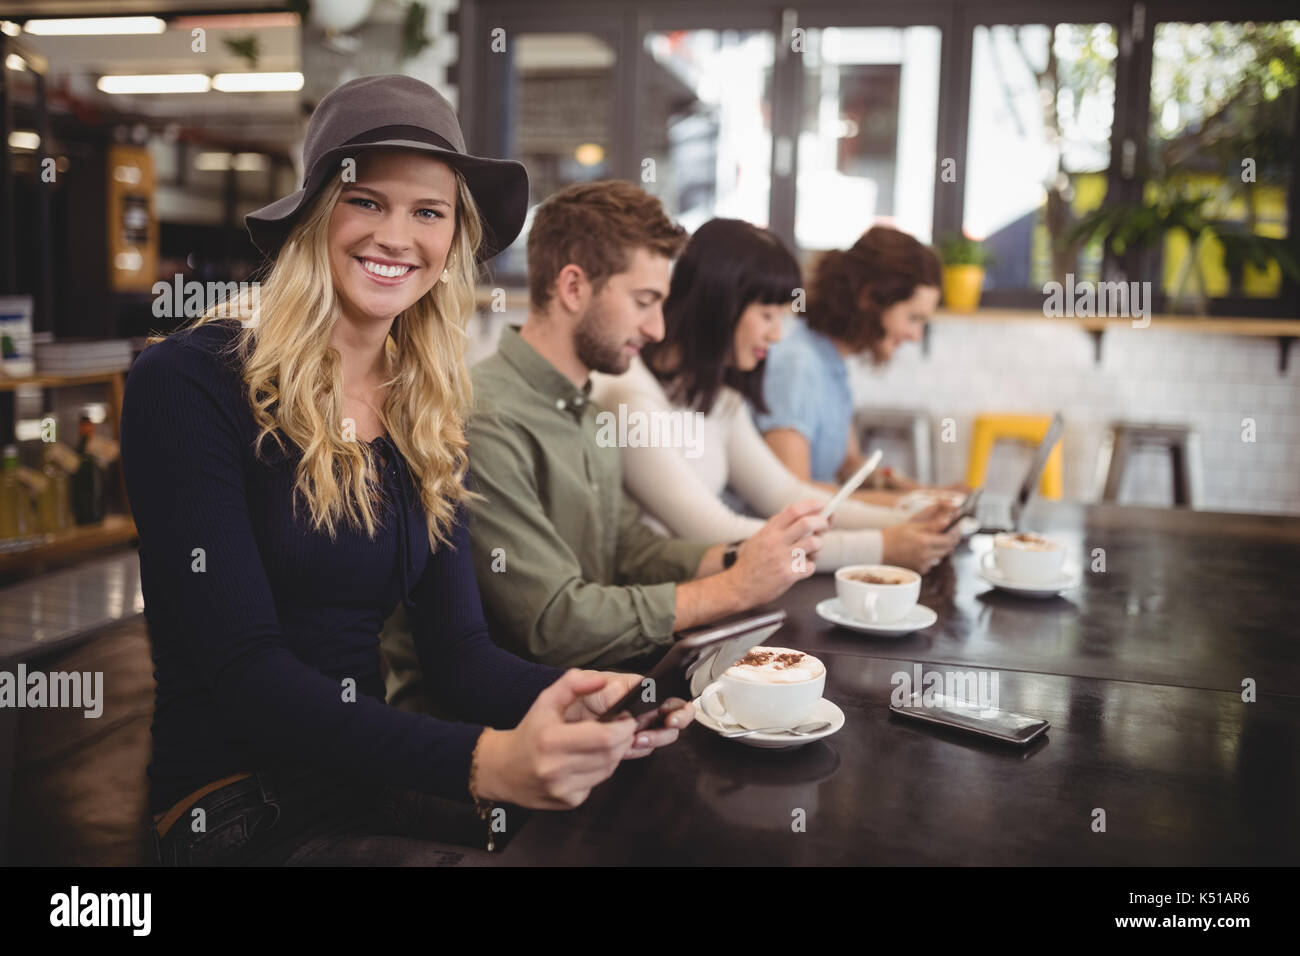 Portrait of smiling young woman sitting with friends at table in cafe Stock Photo